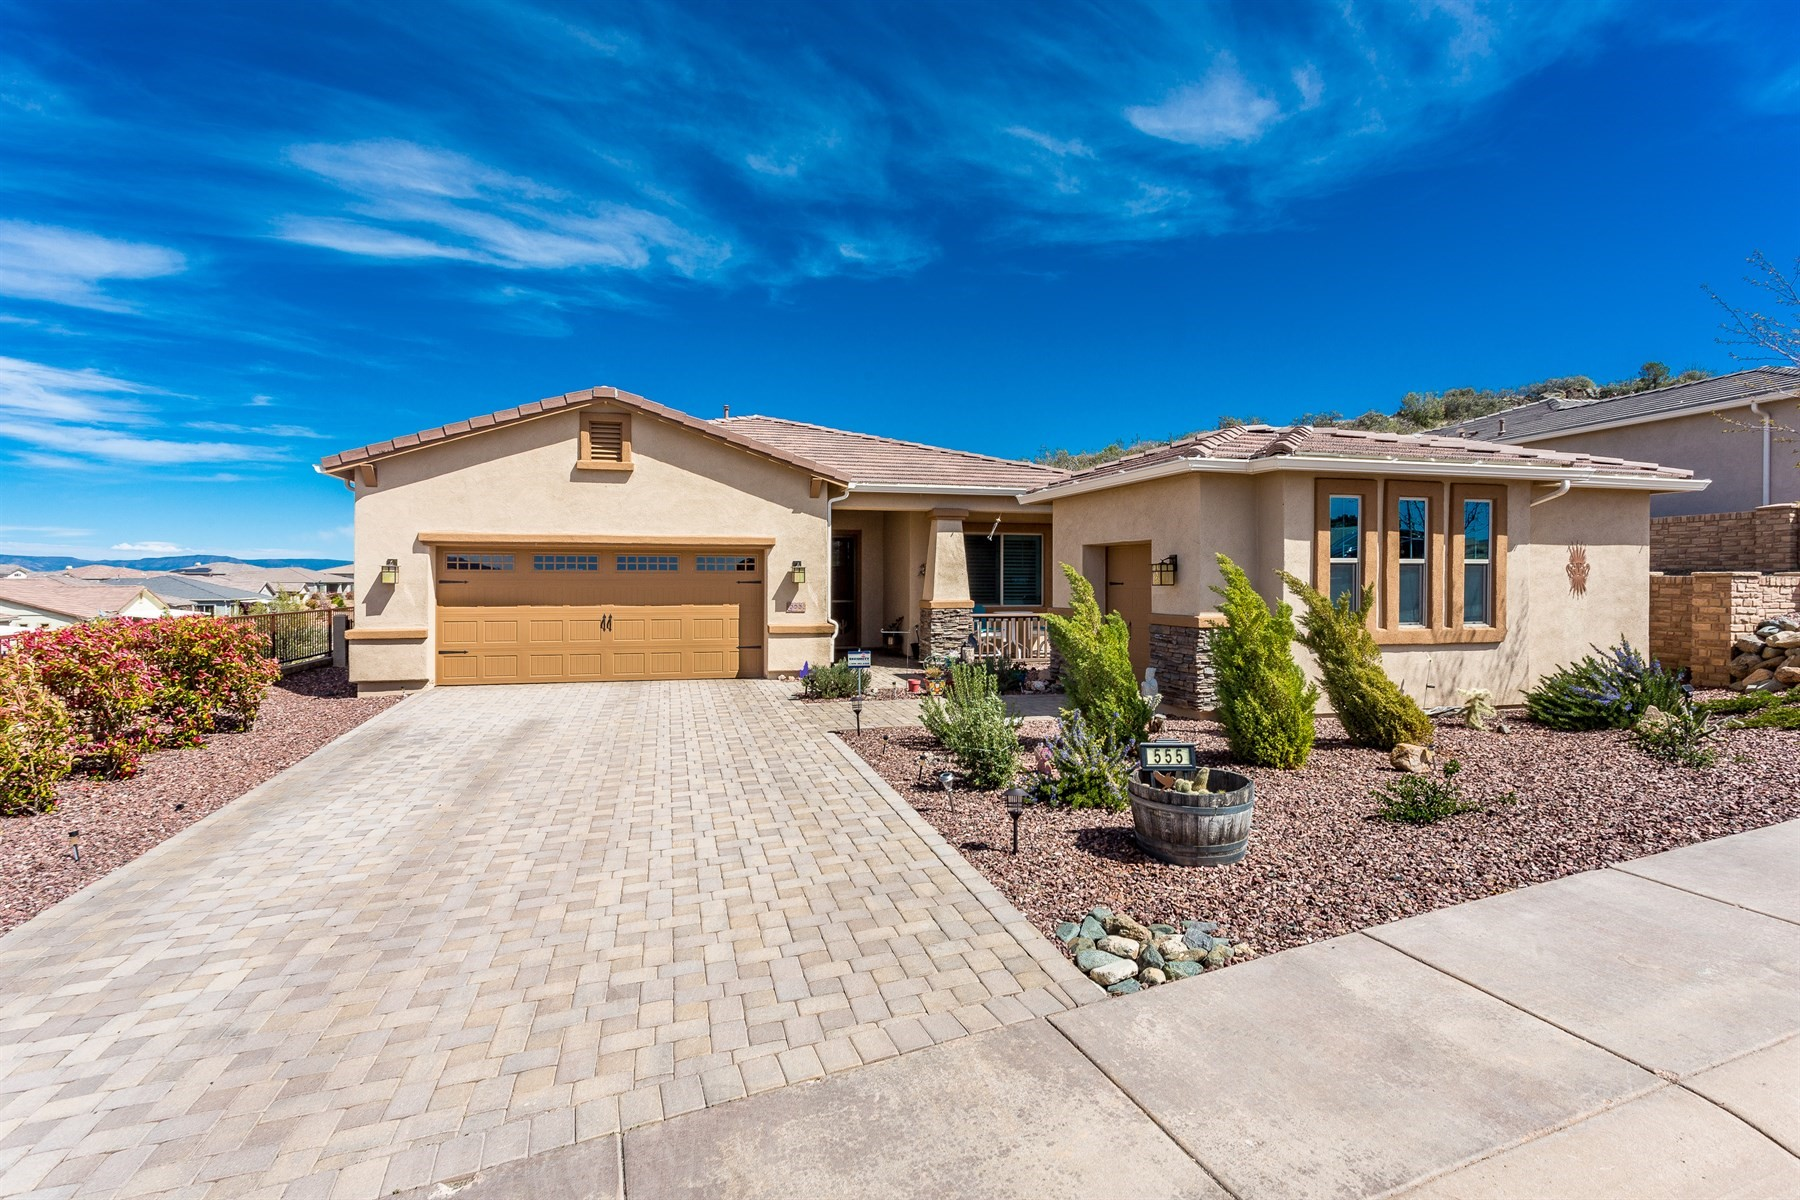 Single Family Home for Sale at Beautiful single story Prescott home 555 Tawny Drive Prescott, Arizona, 86301 United States